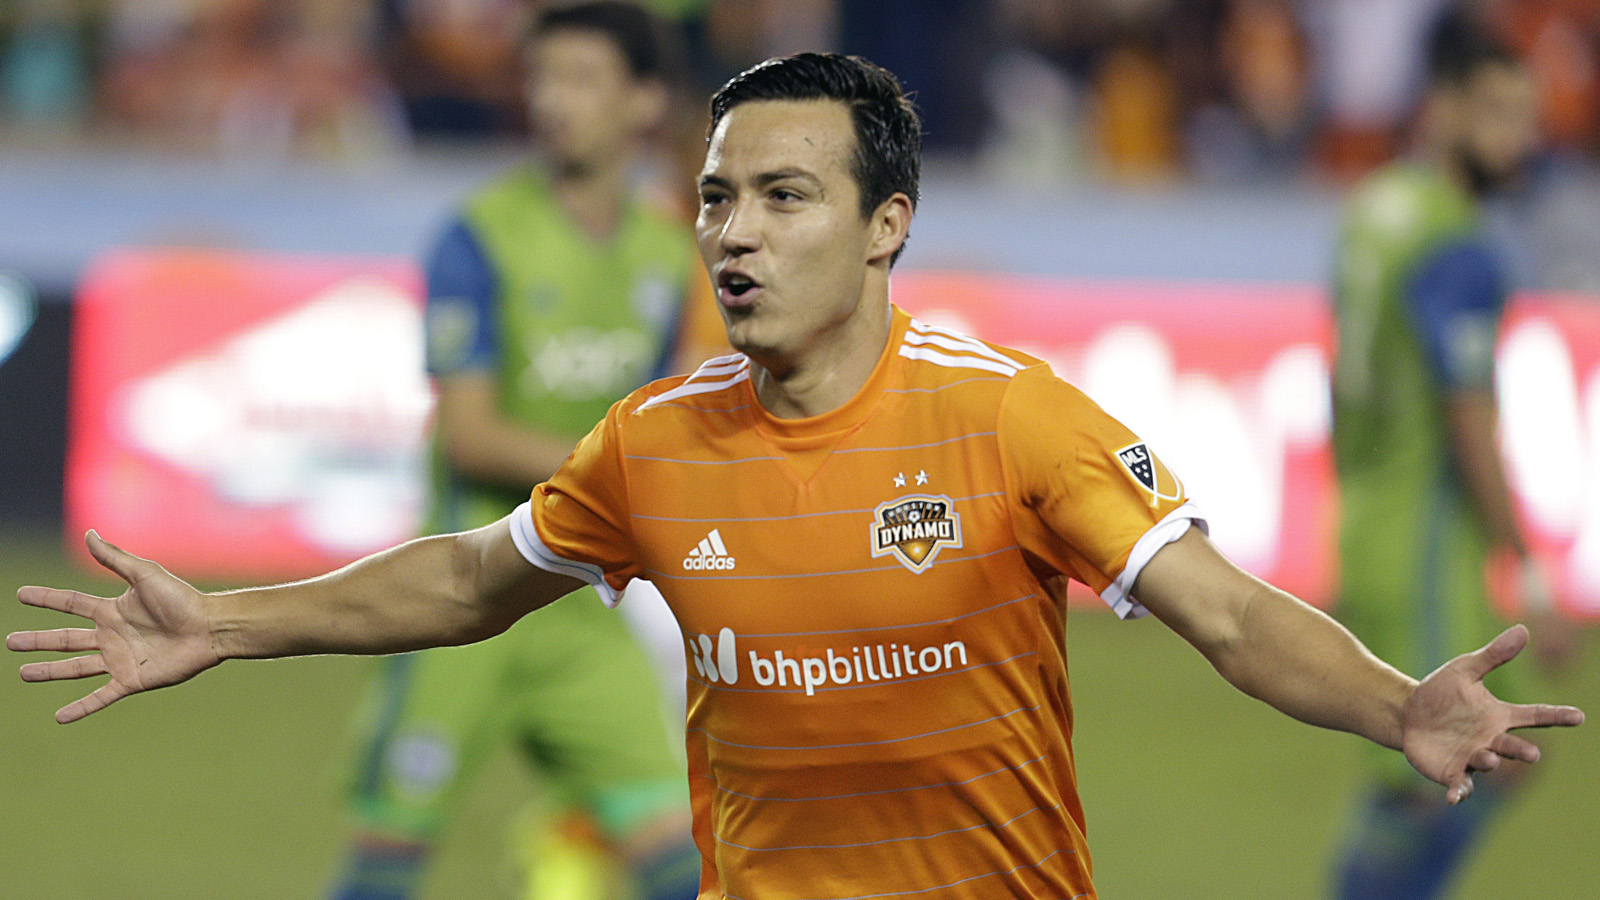 Mar 4, 2017; Houston, TX, USA; Houston Dynamo forward Erick Torres (9) celebrates after scoring on a free kick against the Seattle Sounders in the first half at BBVA Compass Stadium. Mandatory Credit: Thomas B. Shea-USA TODAY Sports